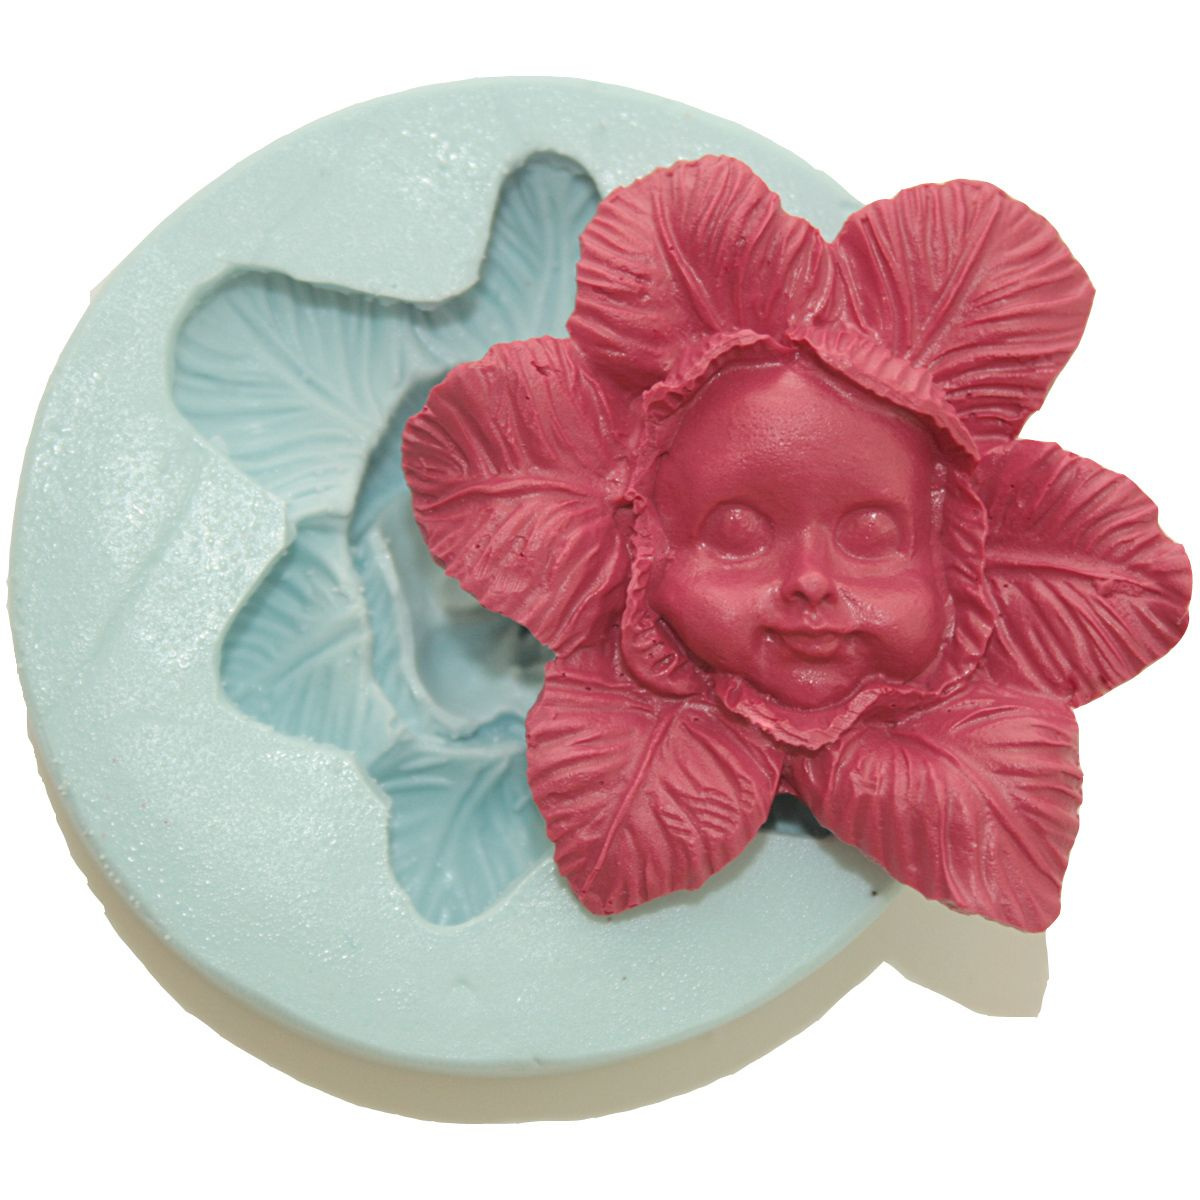 3D Silicone Molds Cake Baby Face Fondant Gumpaste Supply M4755